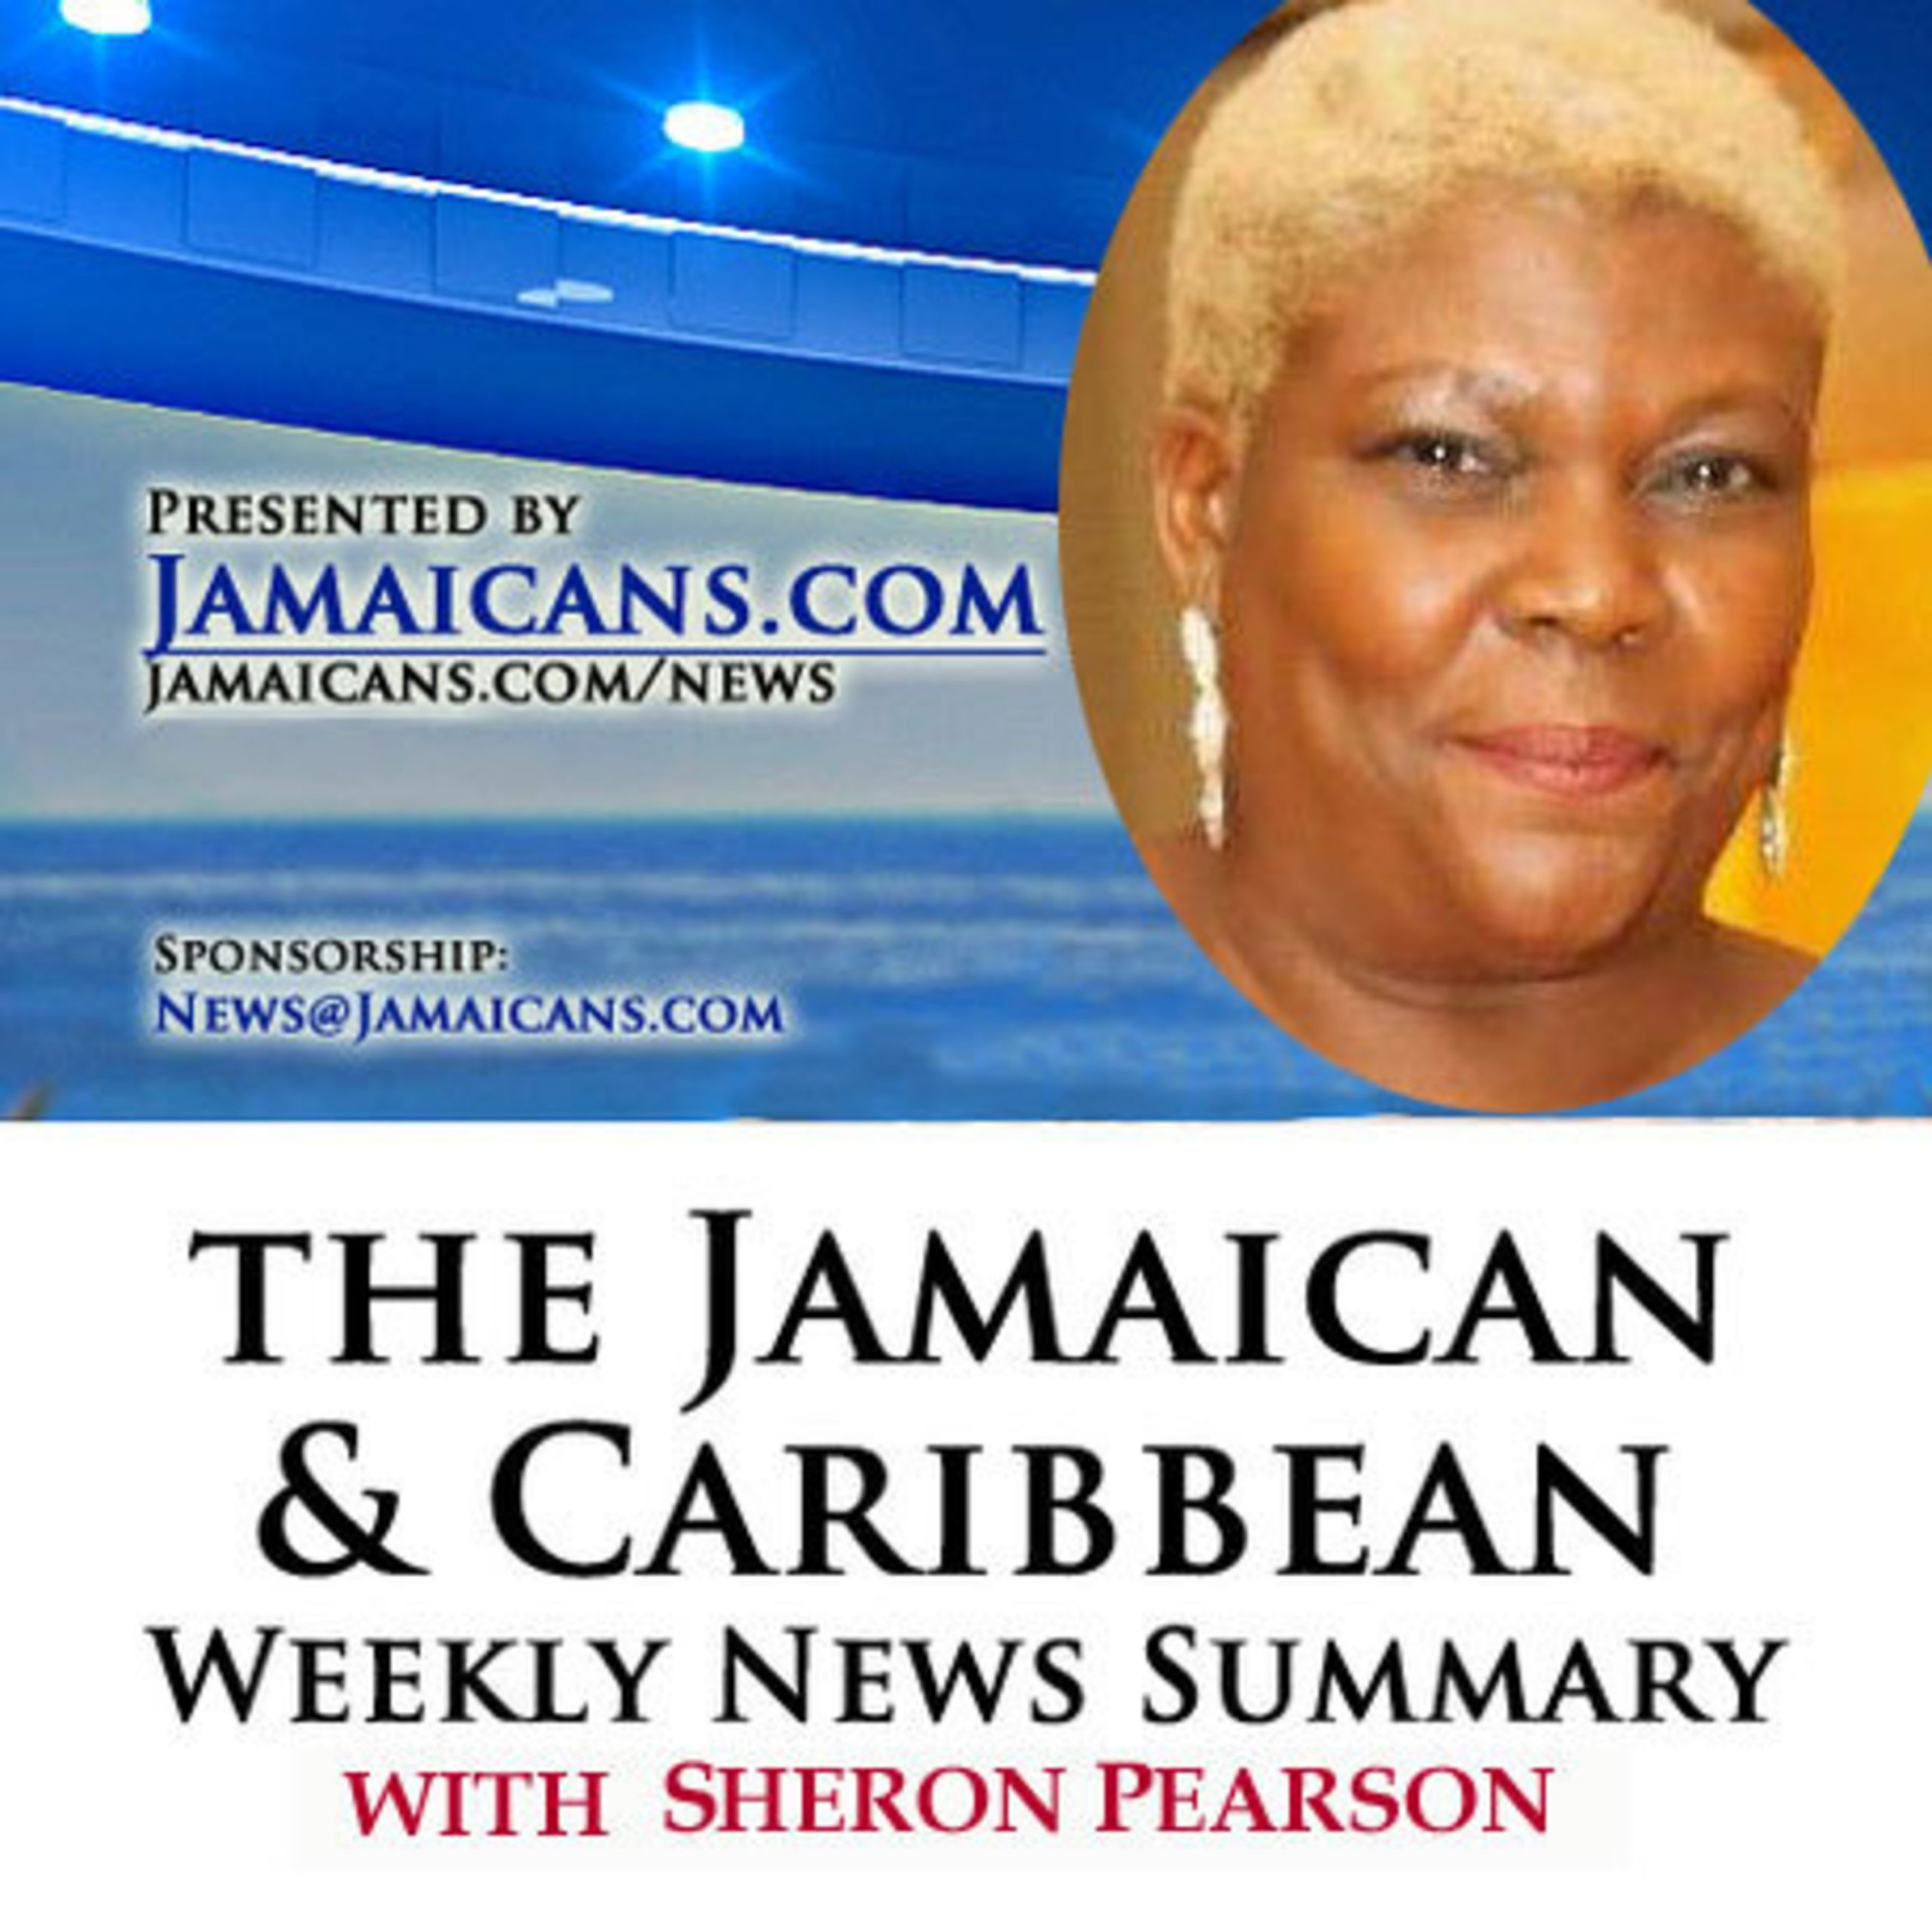 Listen to the Podcast of The Jamaica & Caribbean Weekly News Summary for the week ending October 18, 2019